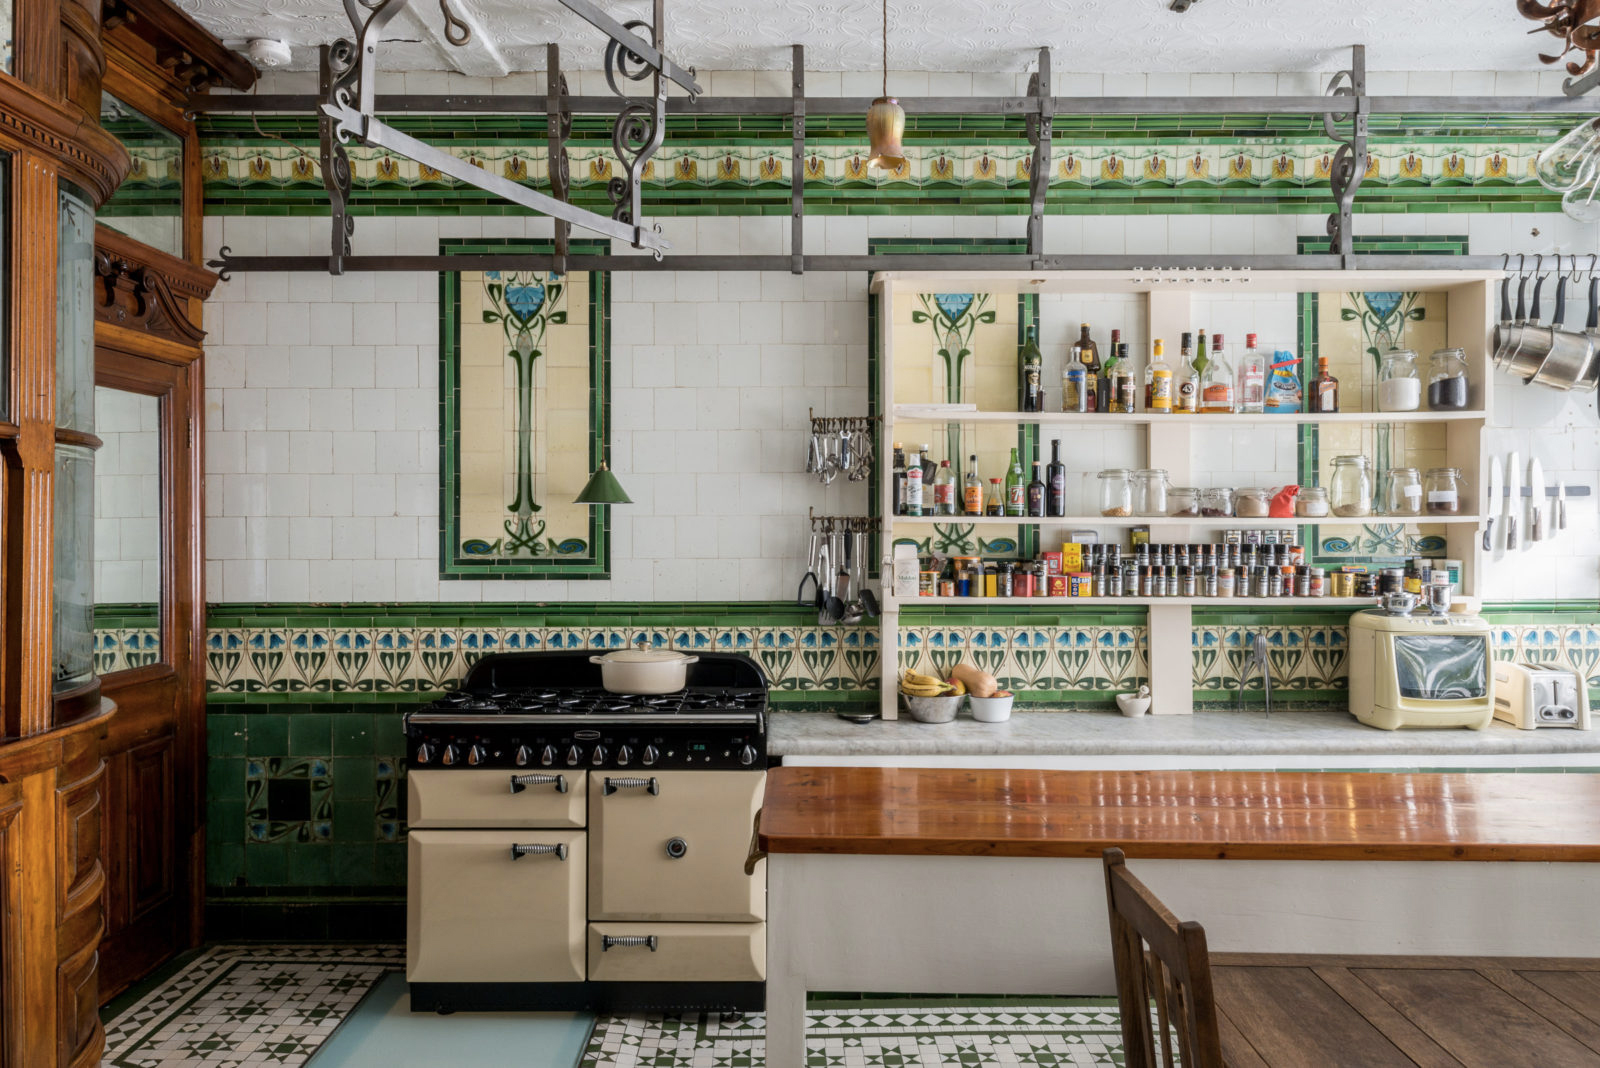 A converted butcher's shop in London, UK